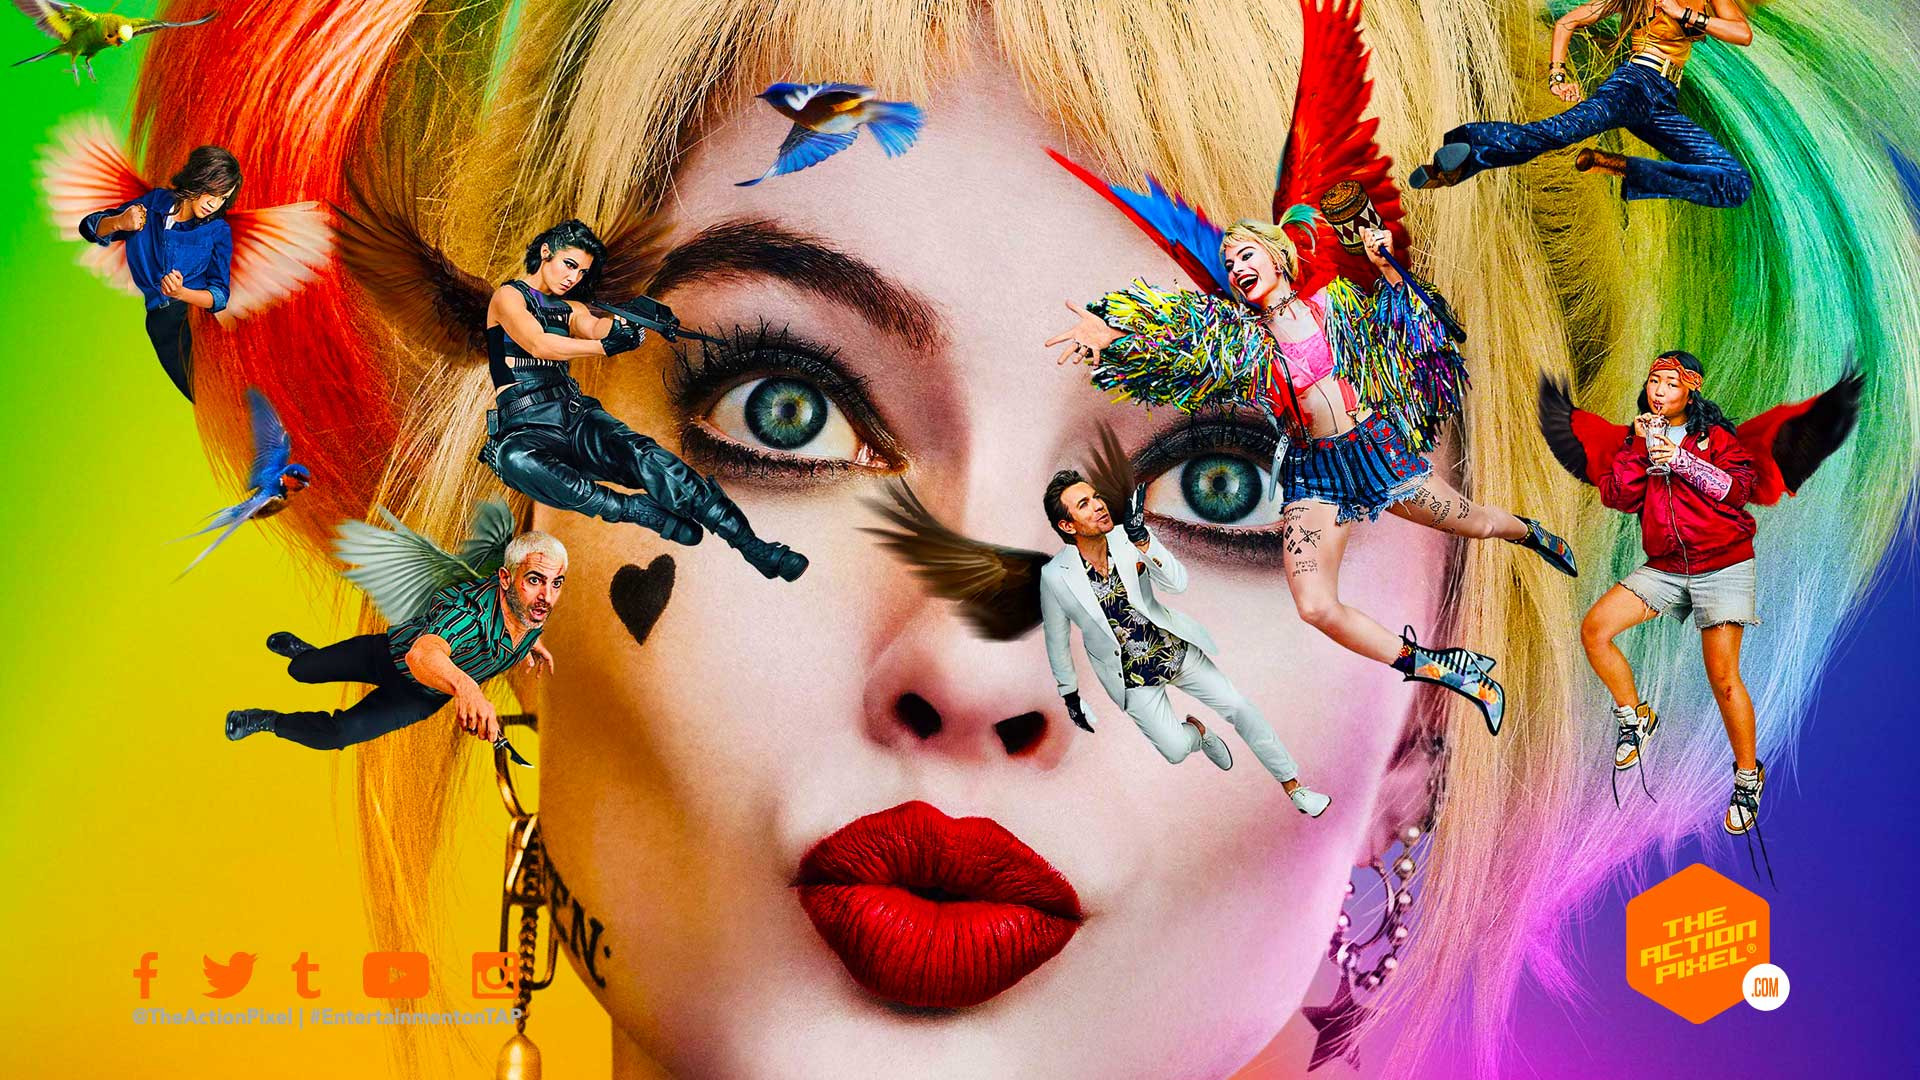 birds of prey poster, birds of prey, birds of prey movie, dc comics, wb pictures, warner bros pictures, harley quinn, margot robbie, the action pixel, entertainment on tap, featured,